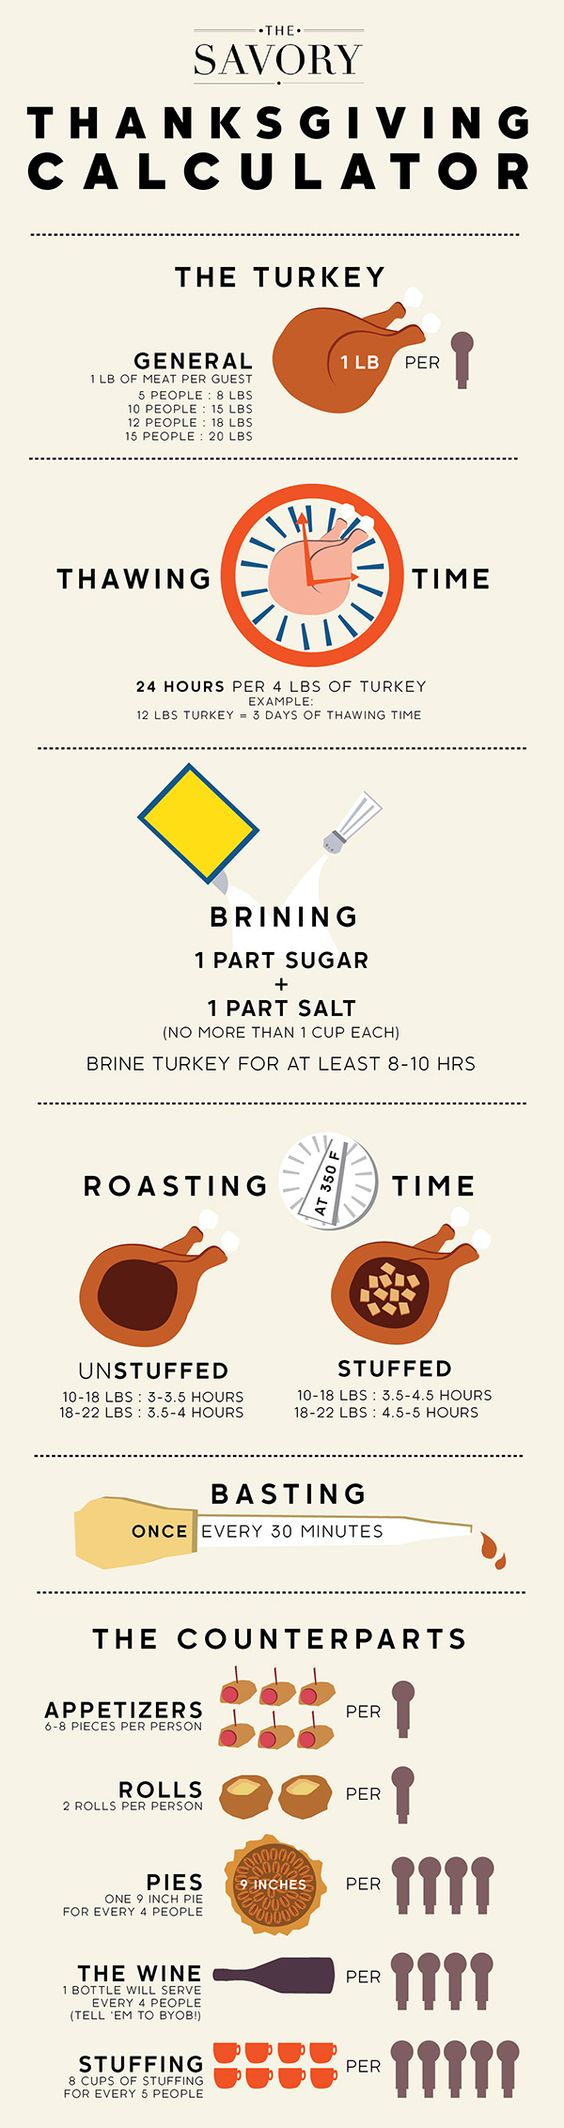 The Ultimate Thanksgiving Infographic Answers: How Much Turkey Per Person?